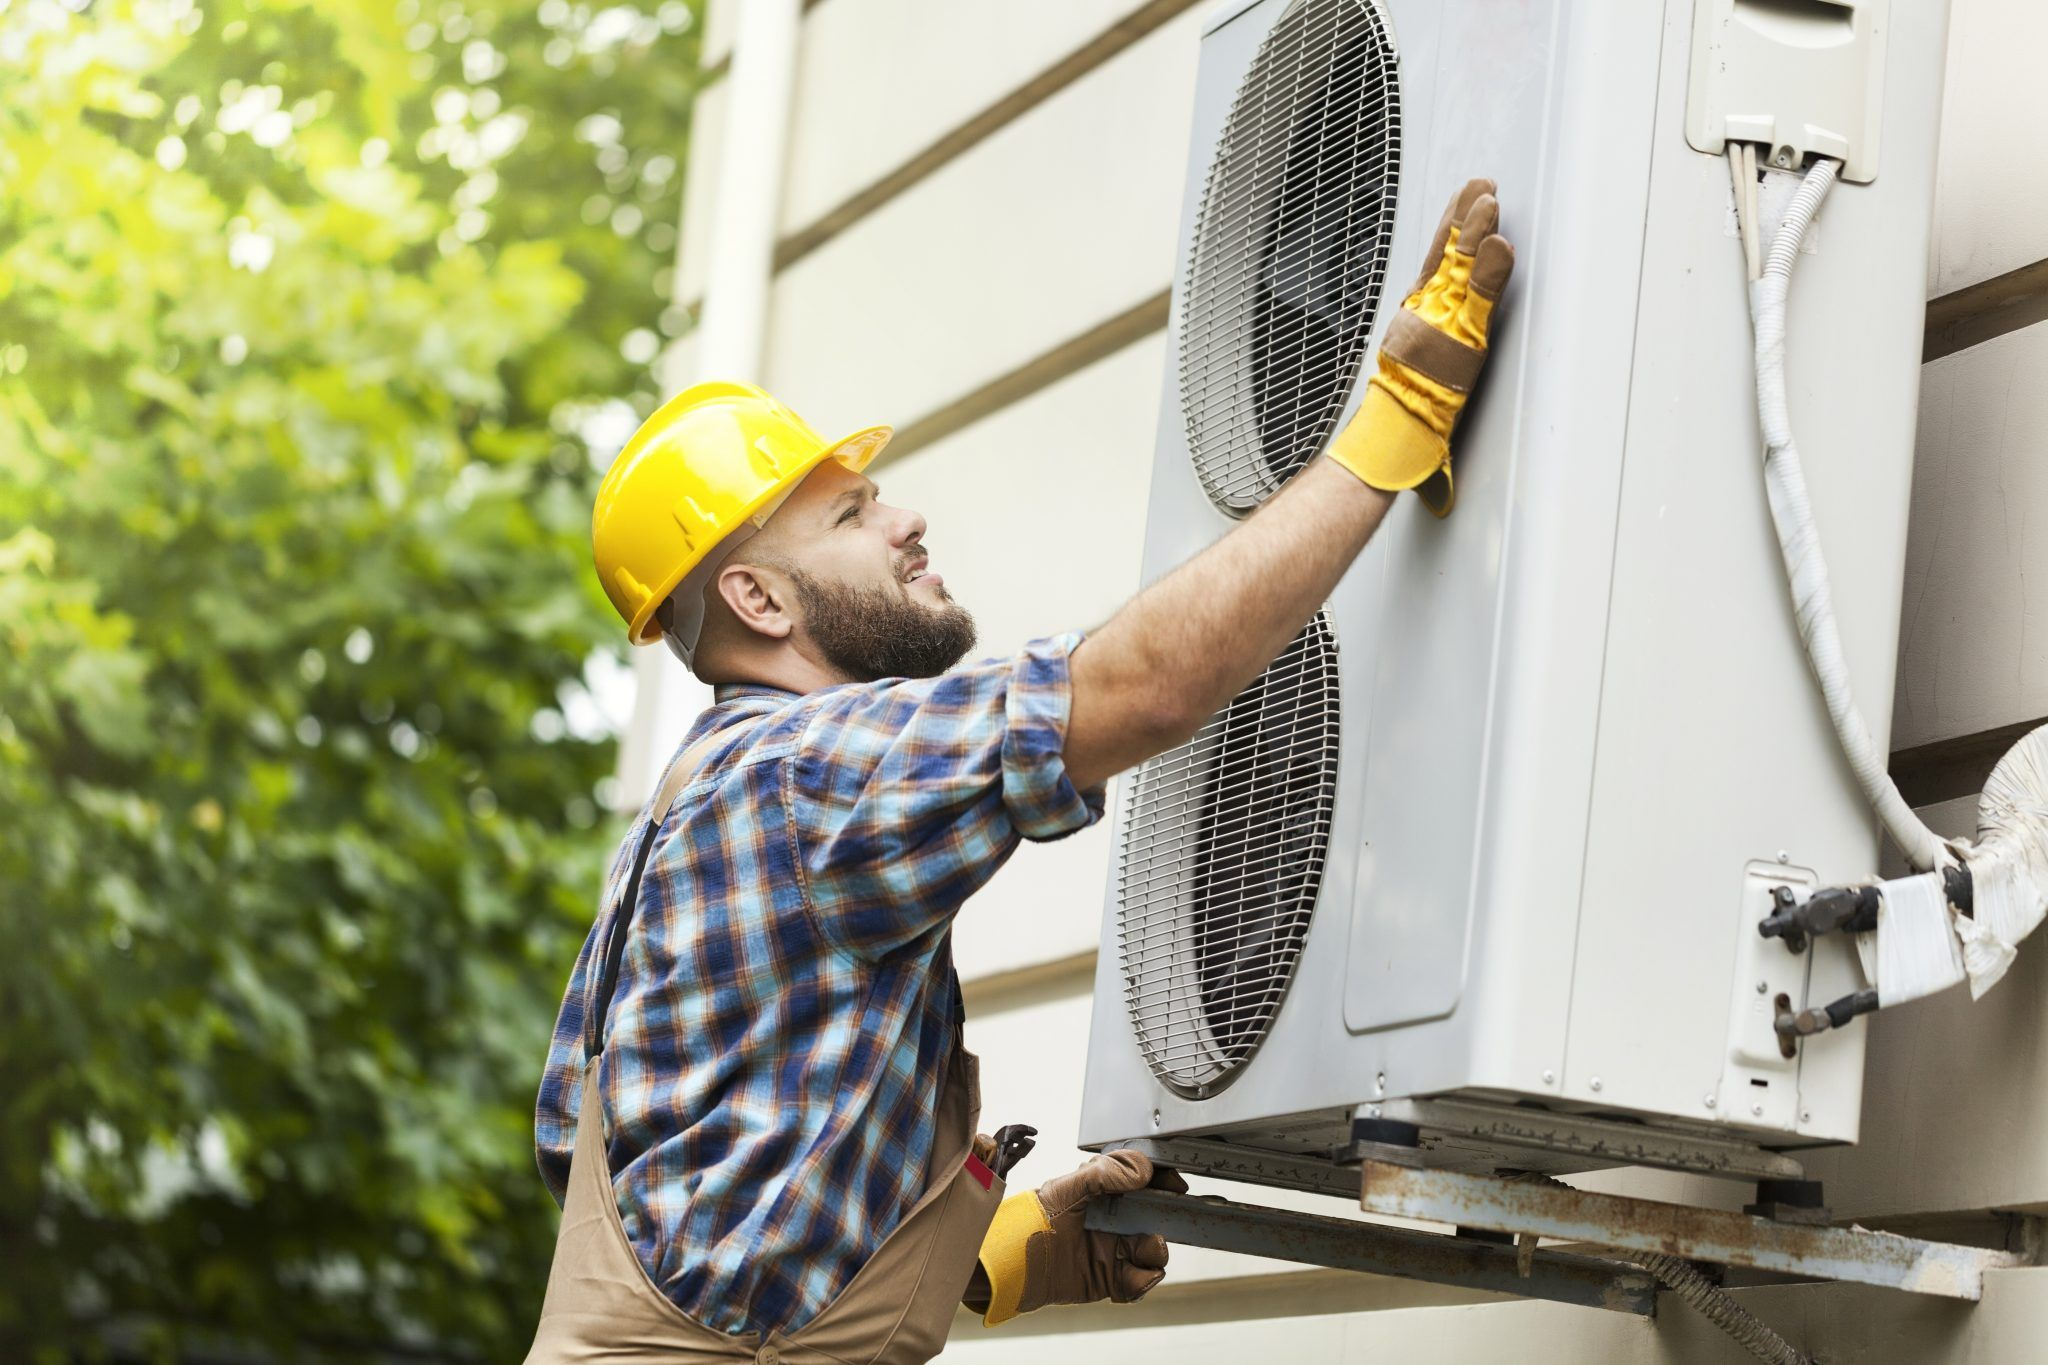 AC Repair Phoenix AZ is a fully licensed professional AC